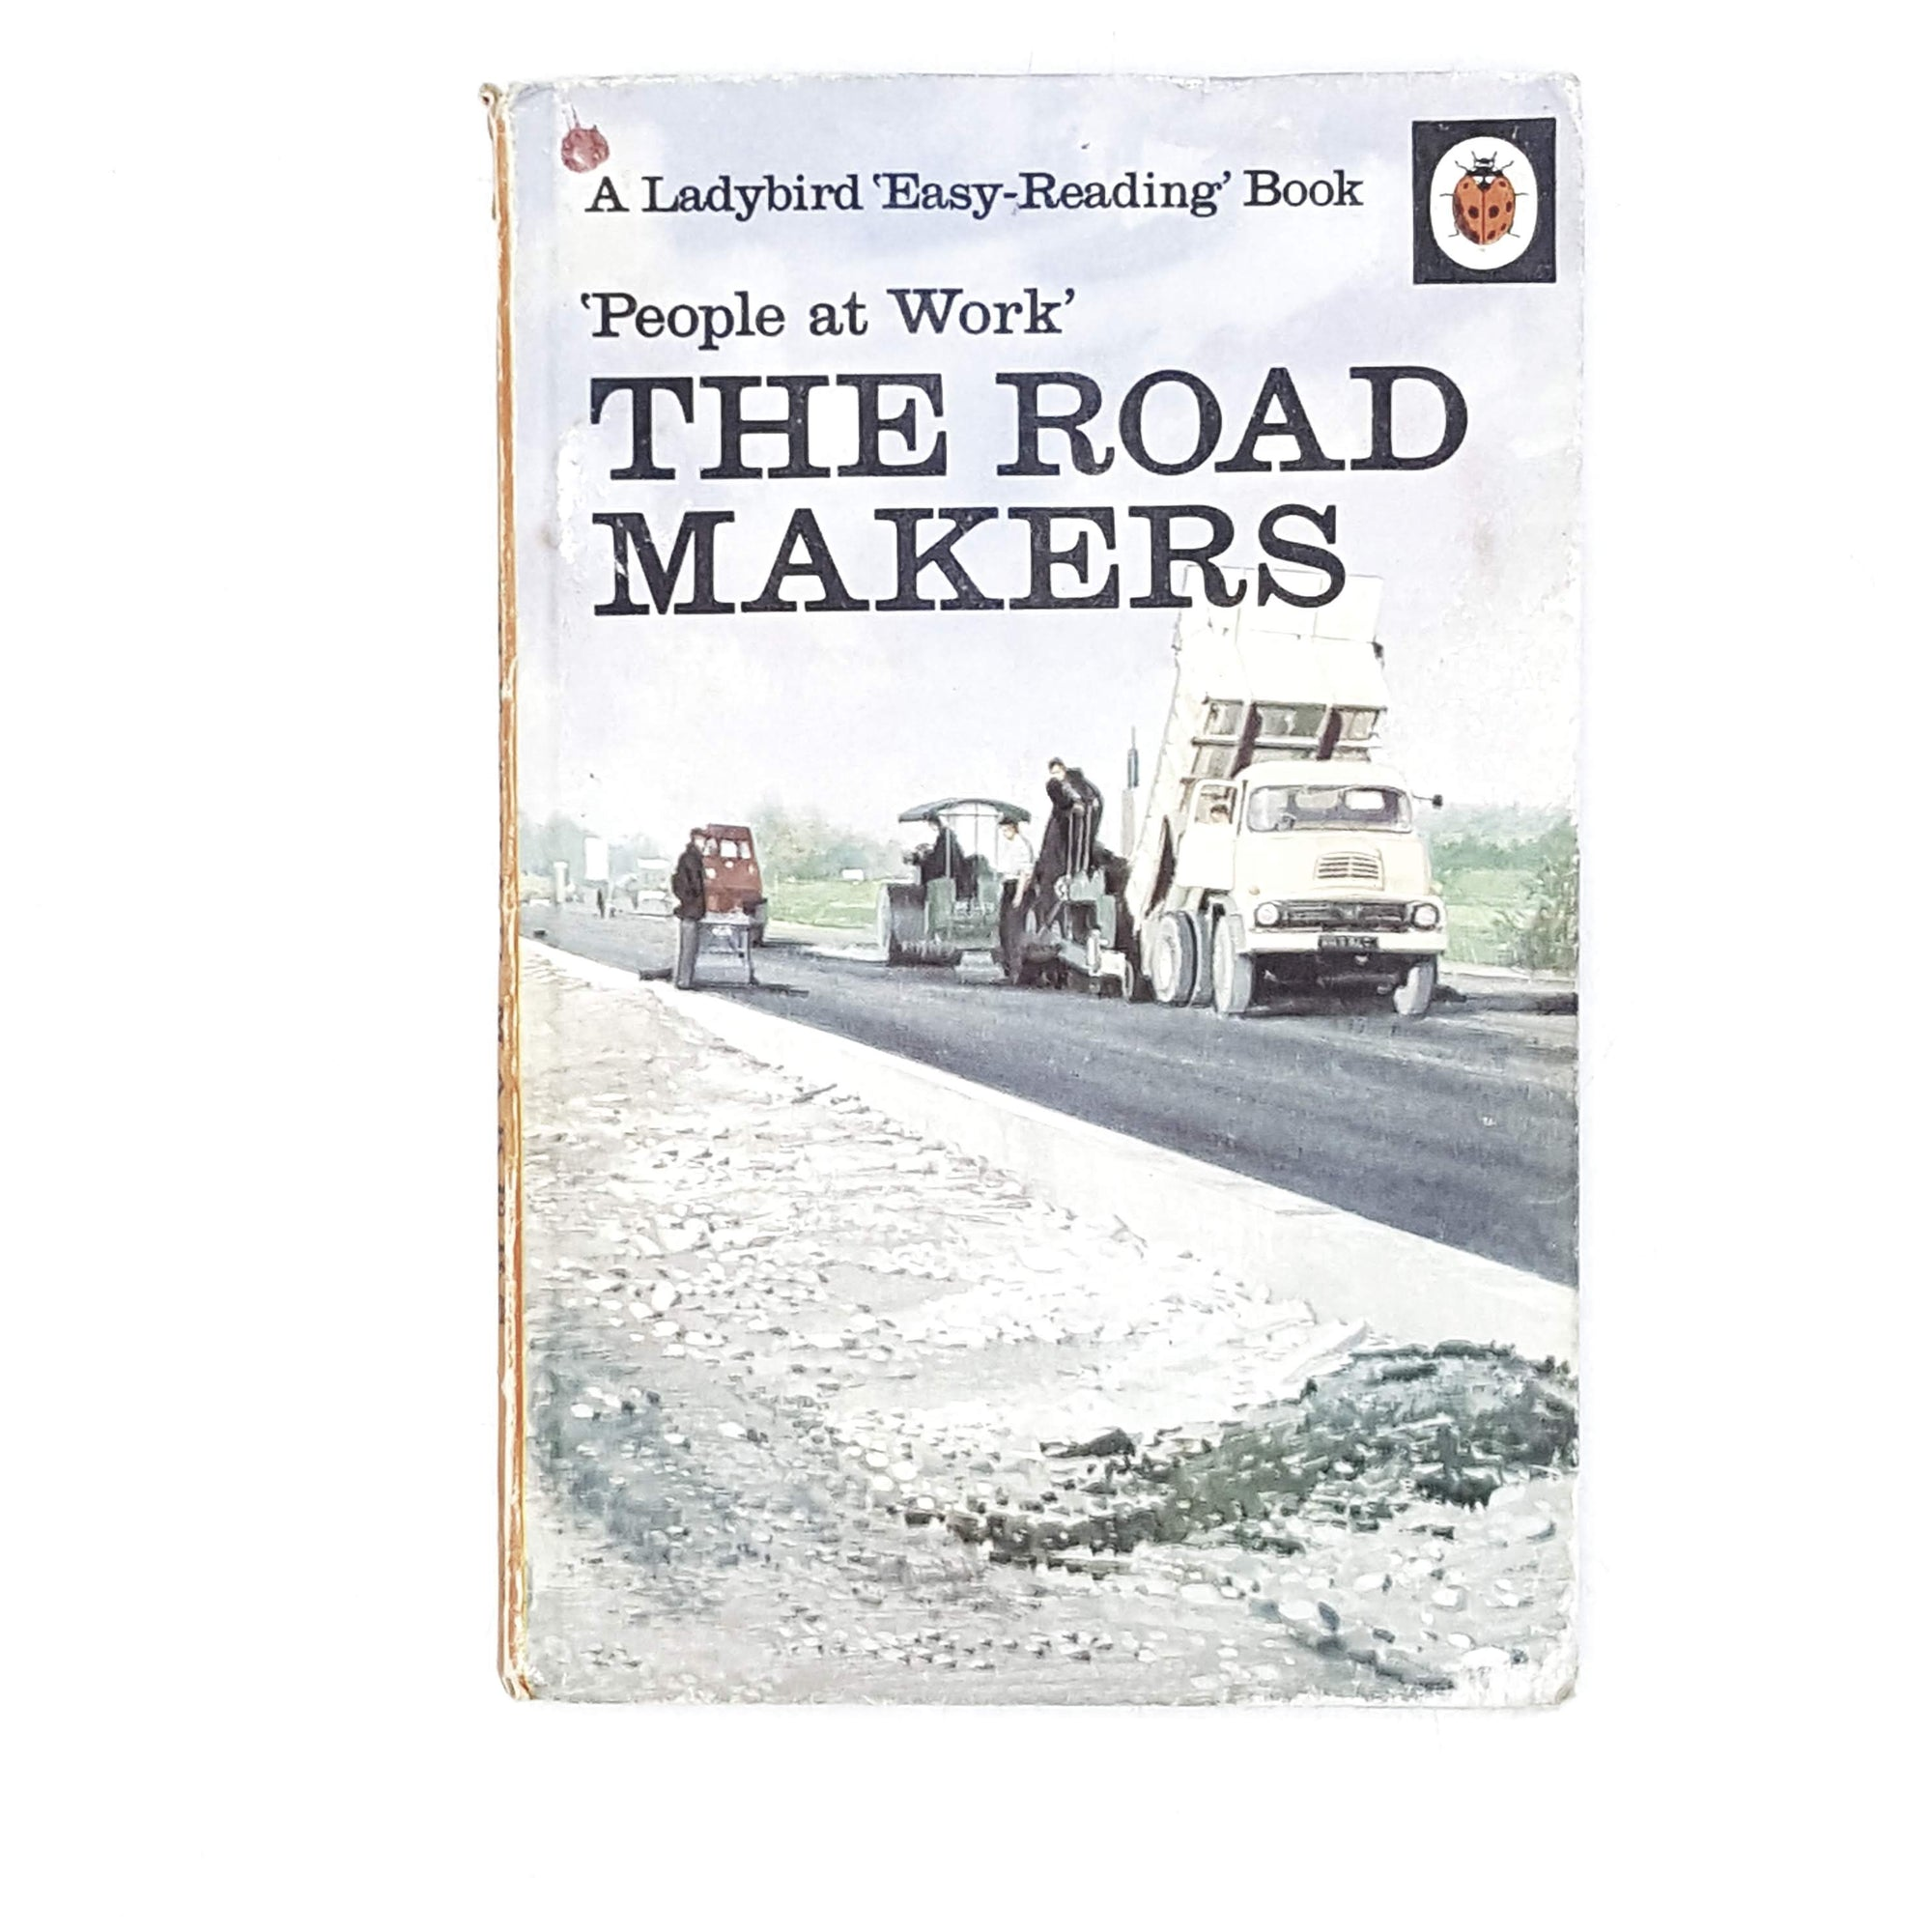 Vintage Ladybird: The Road Makers 1967